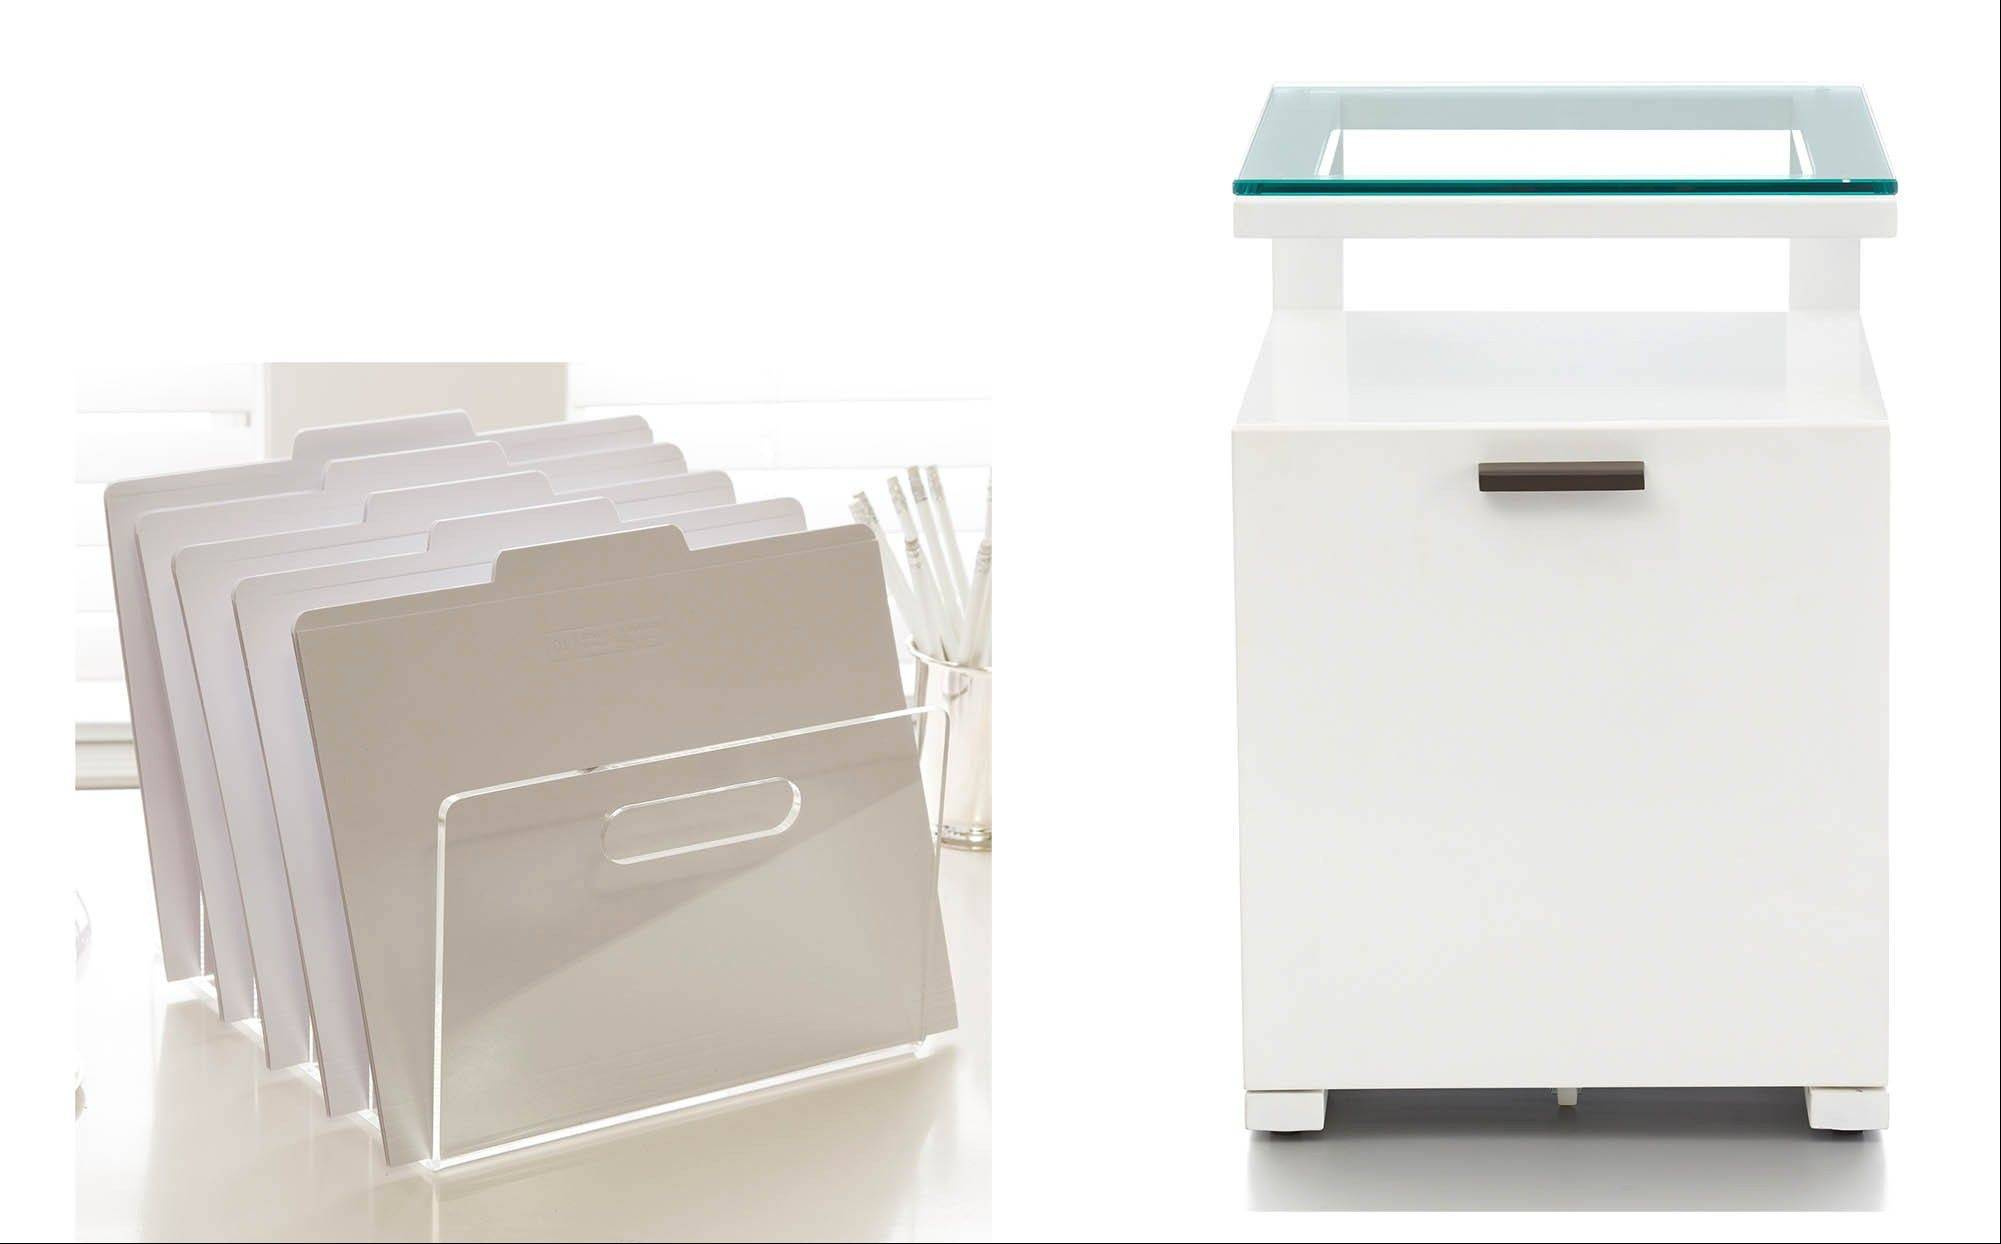 Places to store papers in your home office: left, Russell + Hazel�s acrylic collator, available at See Jane Work; right, the Pilsen Salt Filing Cabinet from Crate &Barrel.